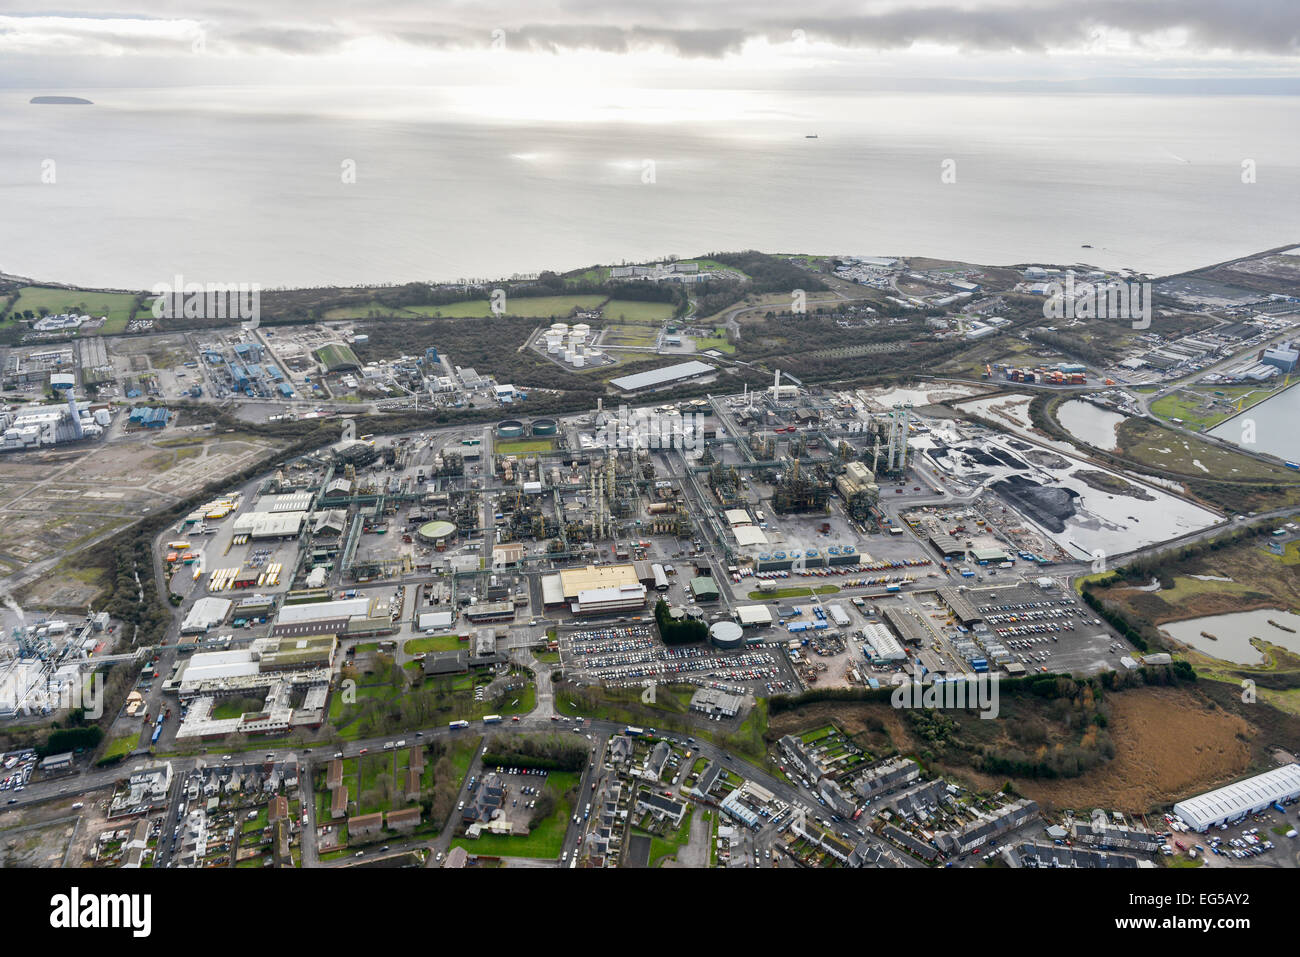 An aerial view of the Dow Corning Chemical Works, Barry, South Wales - Stock Image